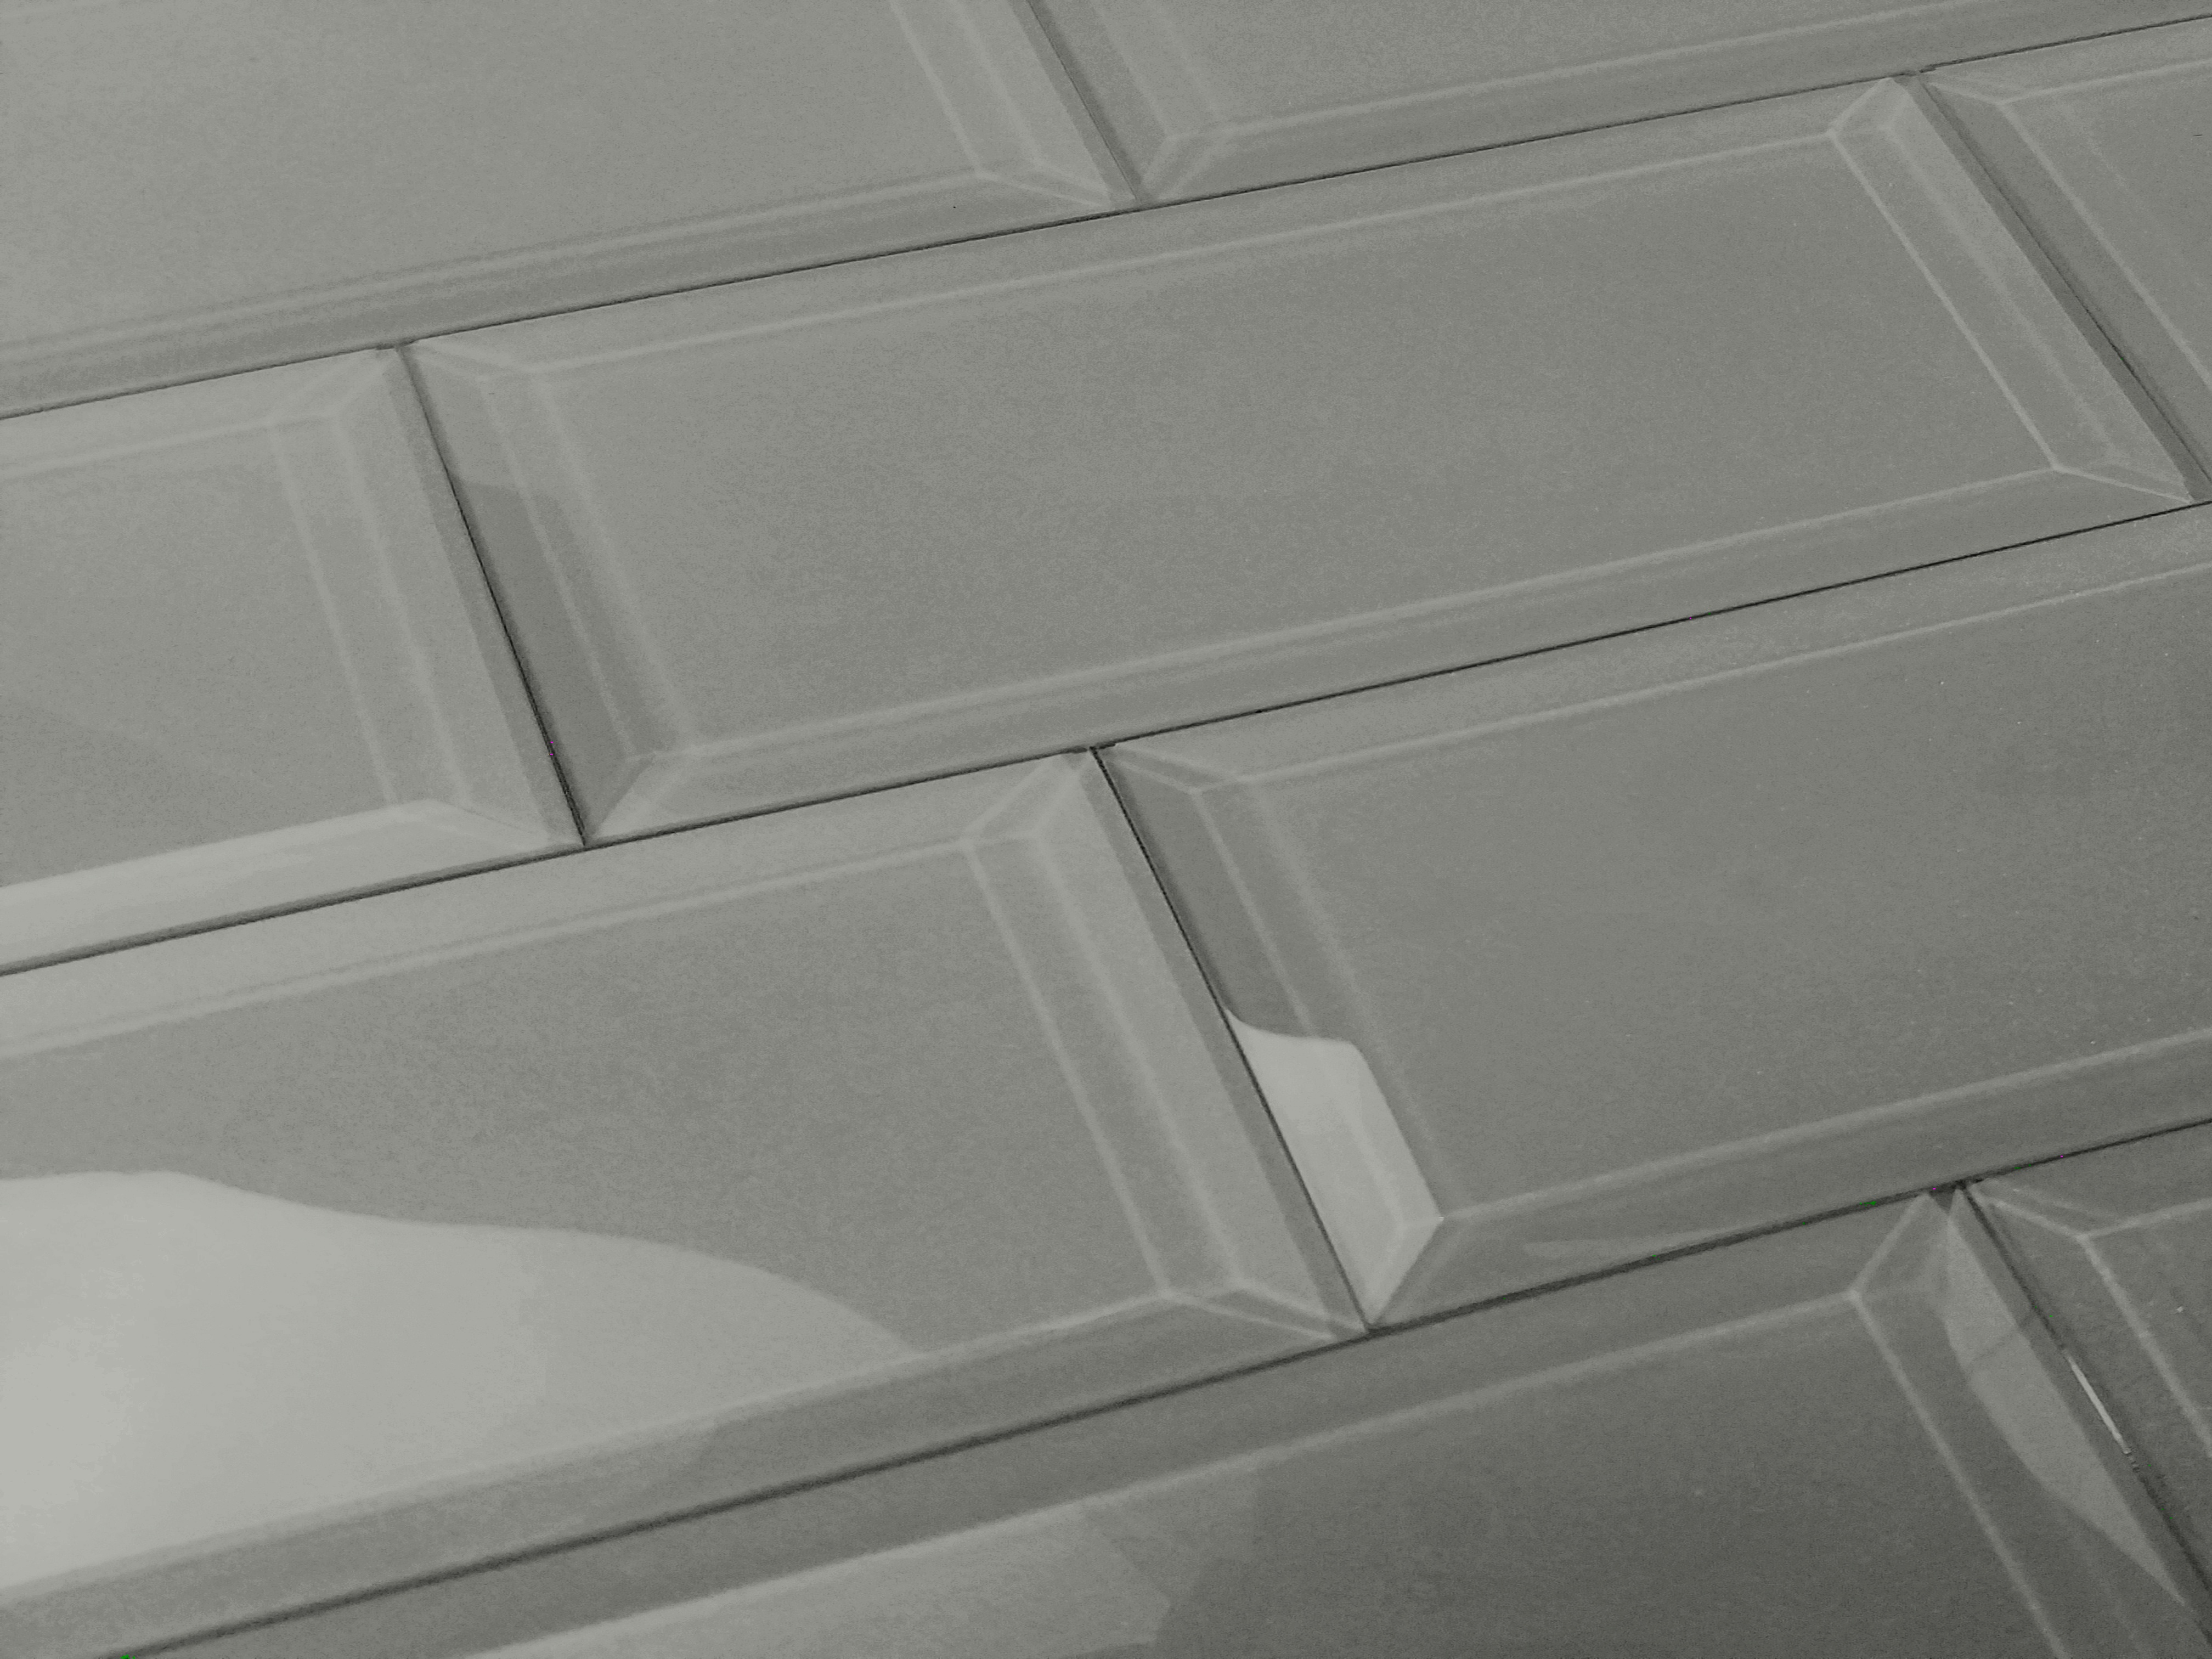 Frosted Elegance 3 in x 12 in Glass Subway Tile in JOSEPHINE Glossy